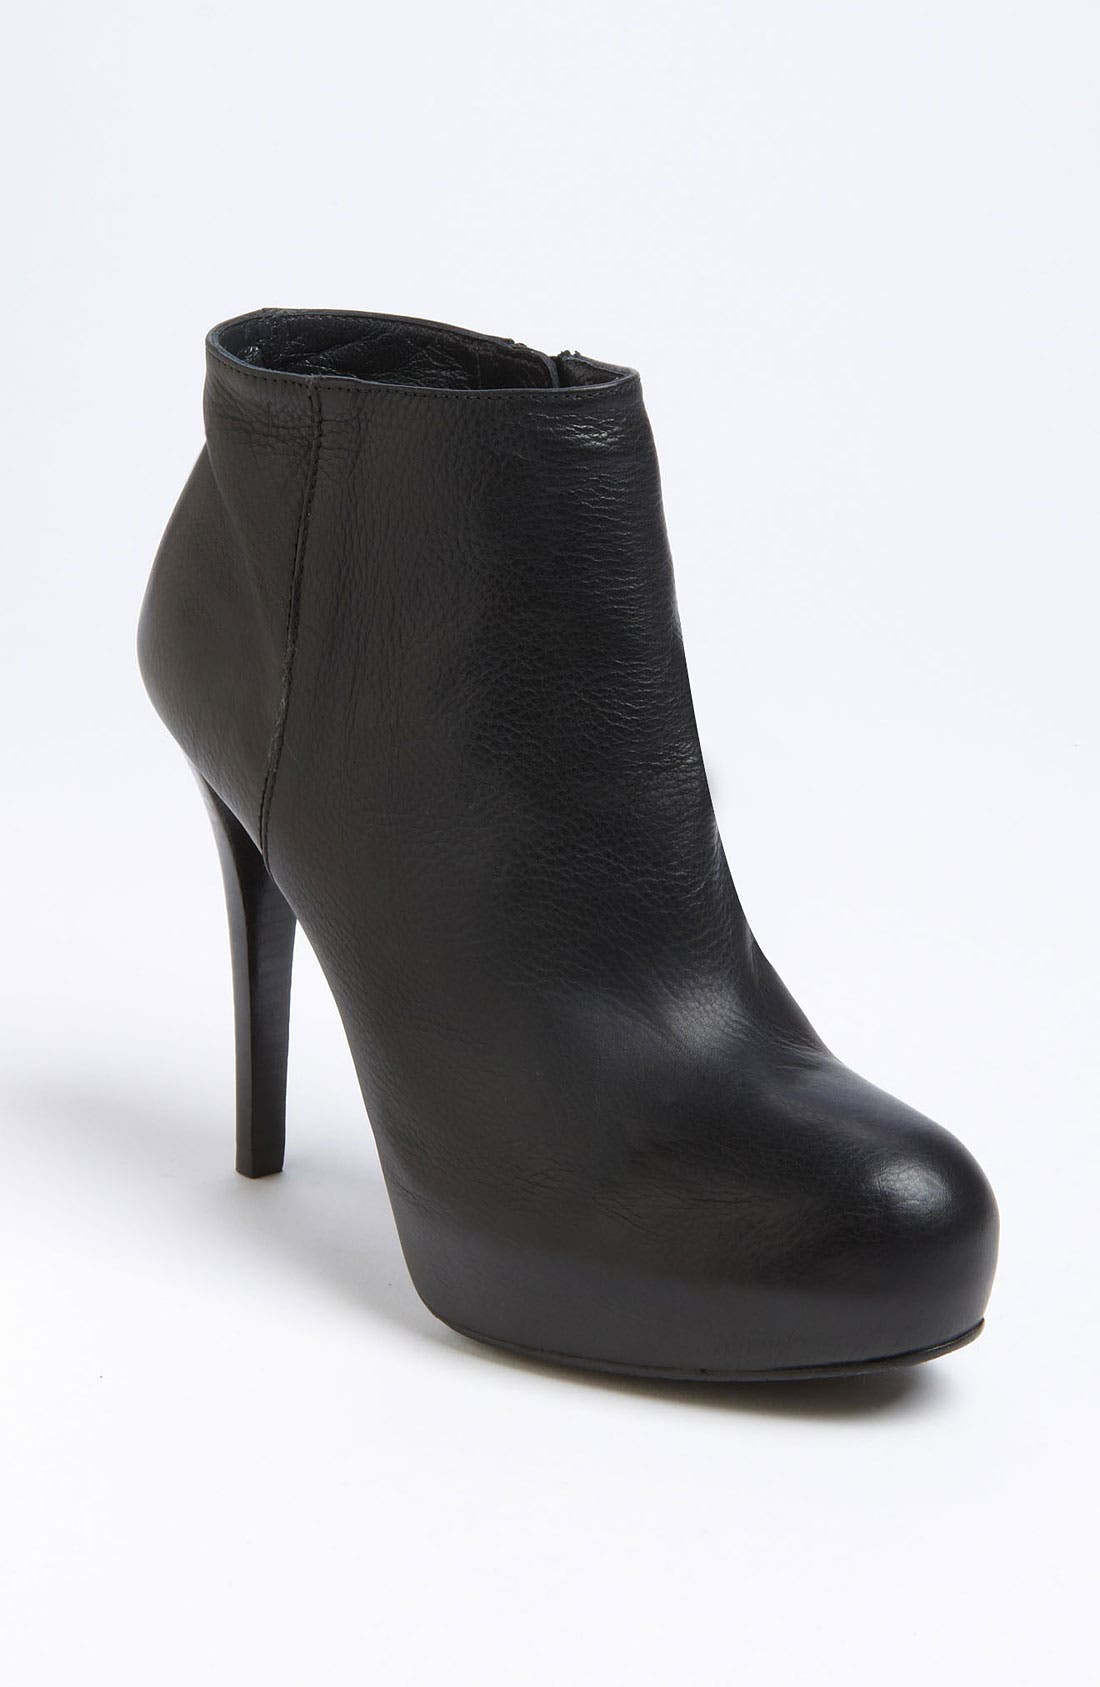 Alternate Image 1 Selected - Stuart Weitzman 'Right' Boot